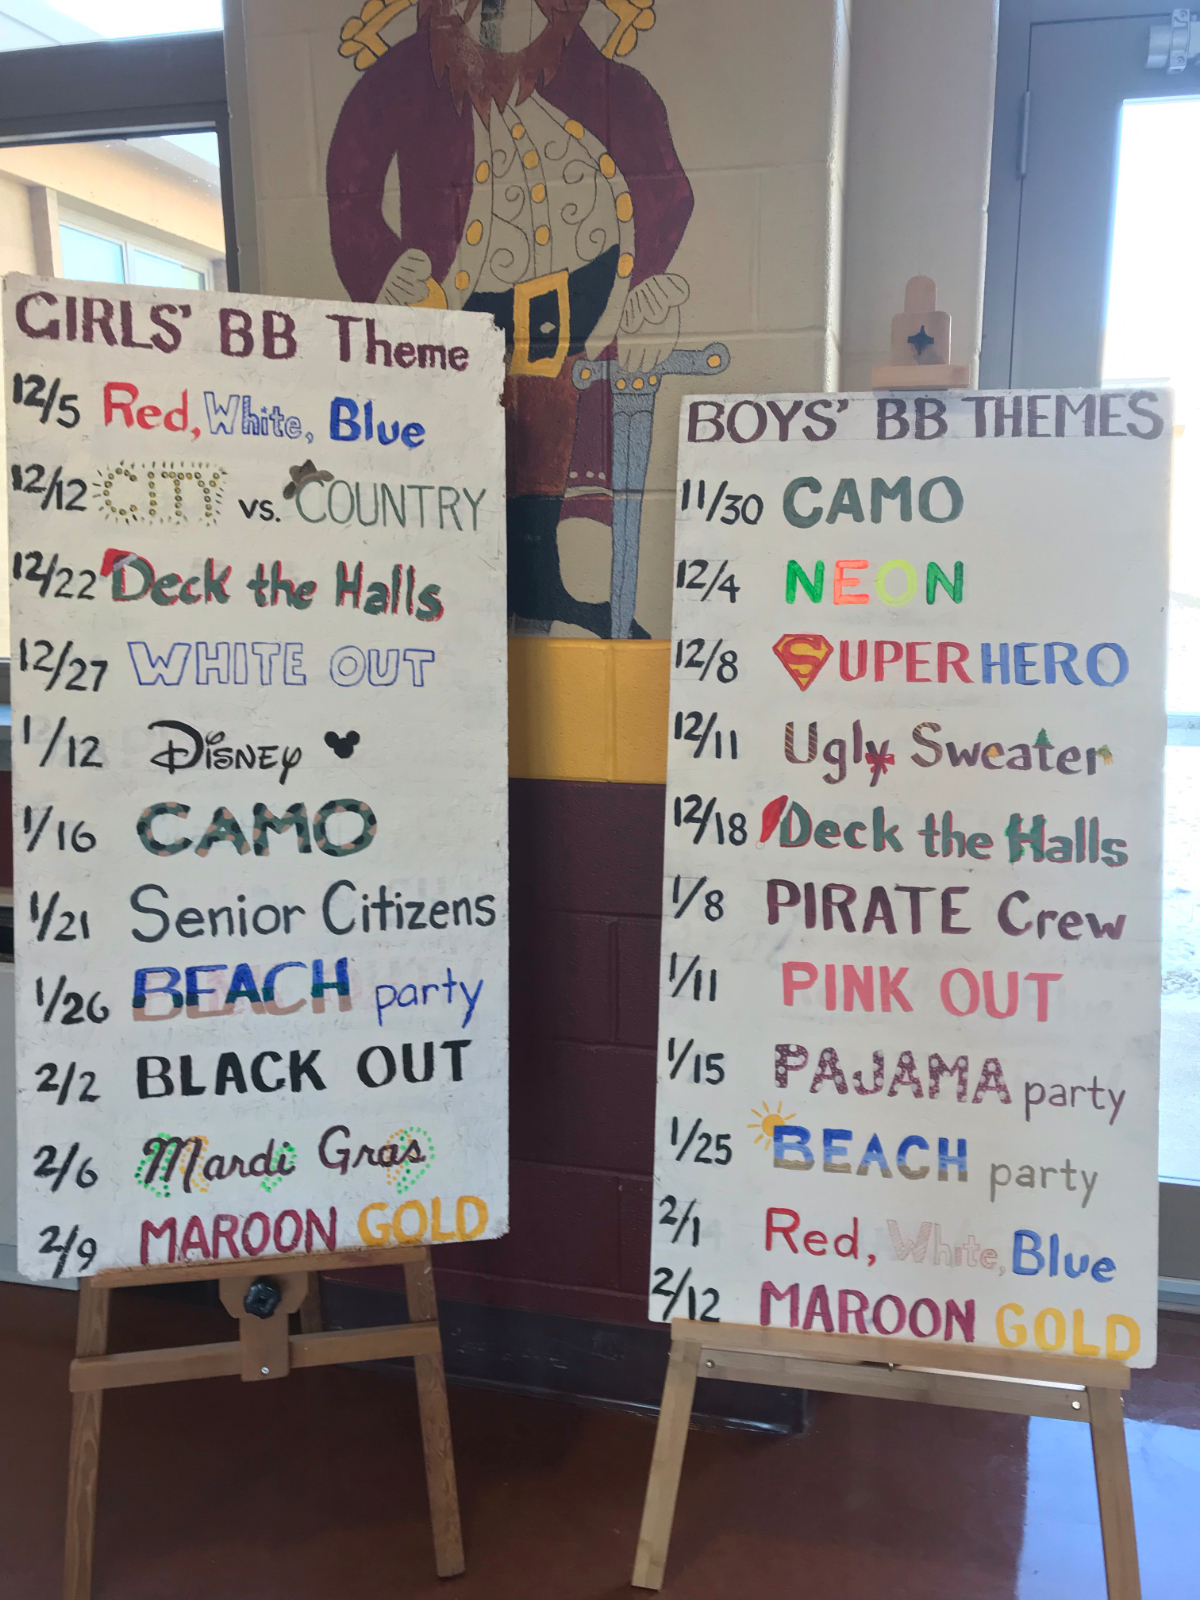 Girls & Boys Spirit Themes for home Basketball Games!